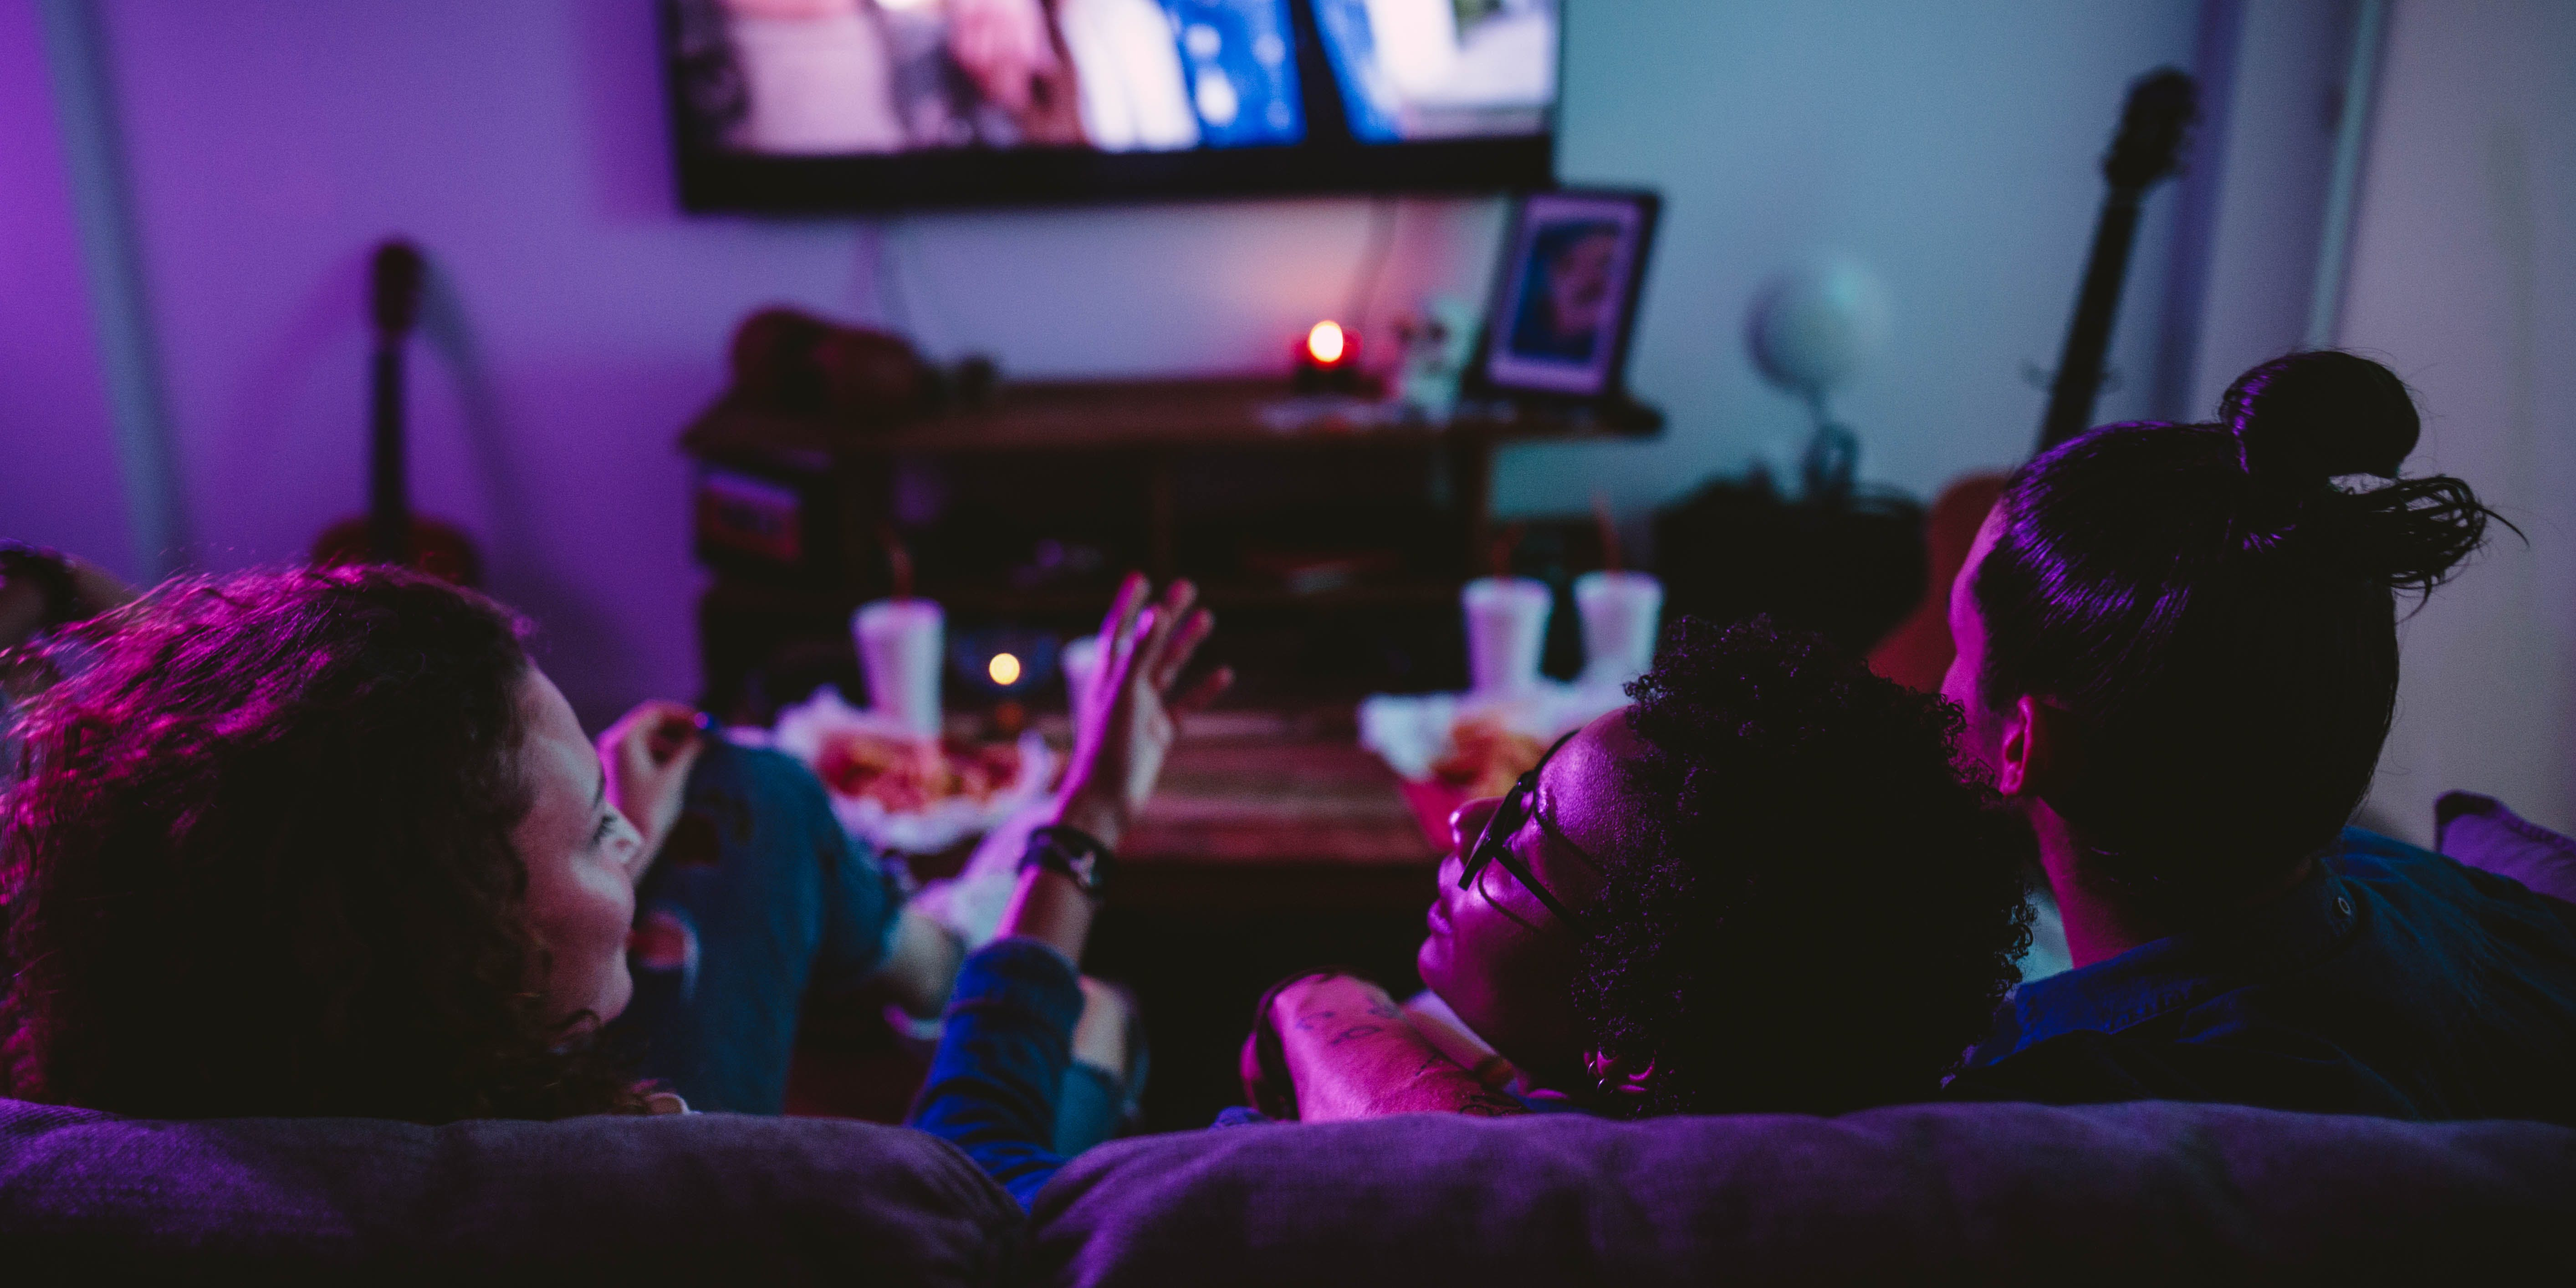 It's the time of year to get cozy and watch Christmas movies. Herb has your list of the best Christmas movies to watch while high.